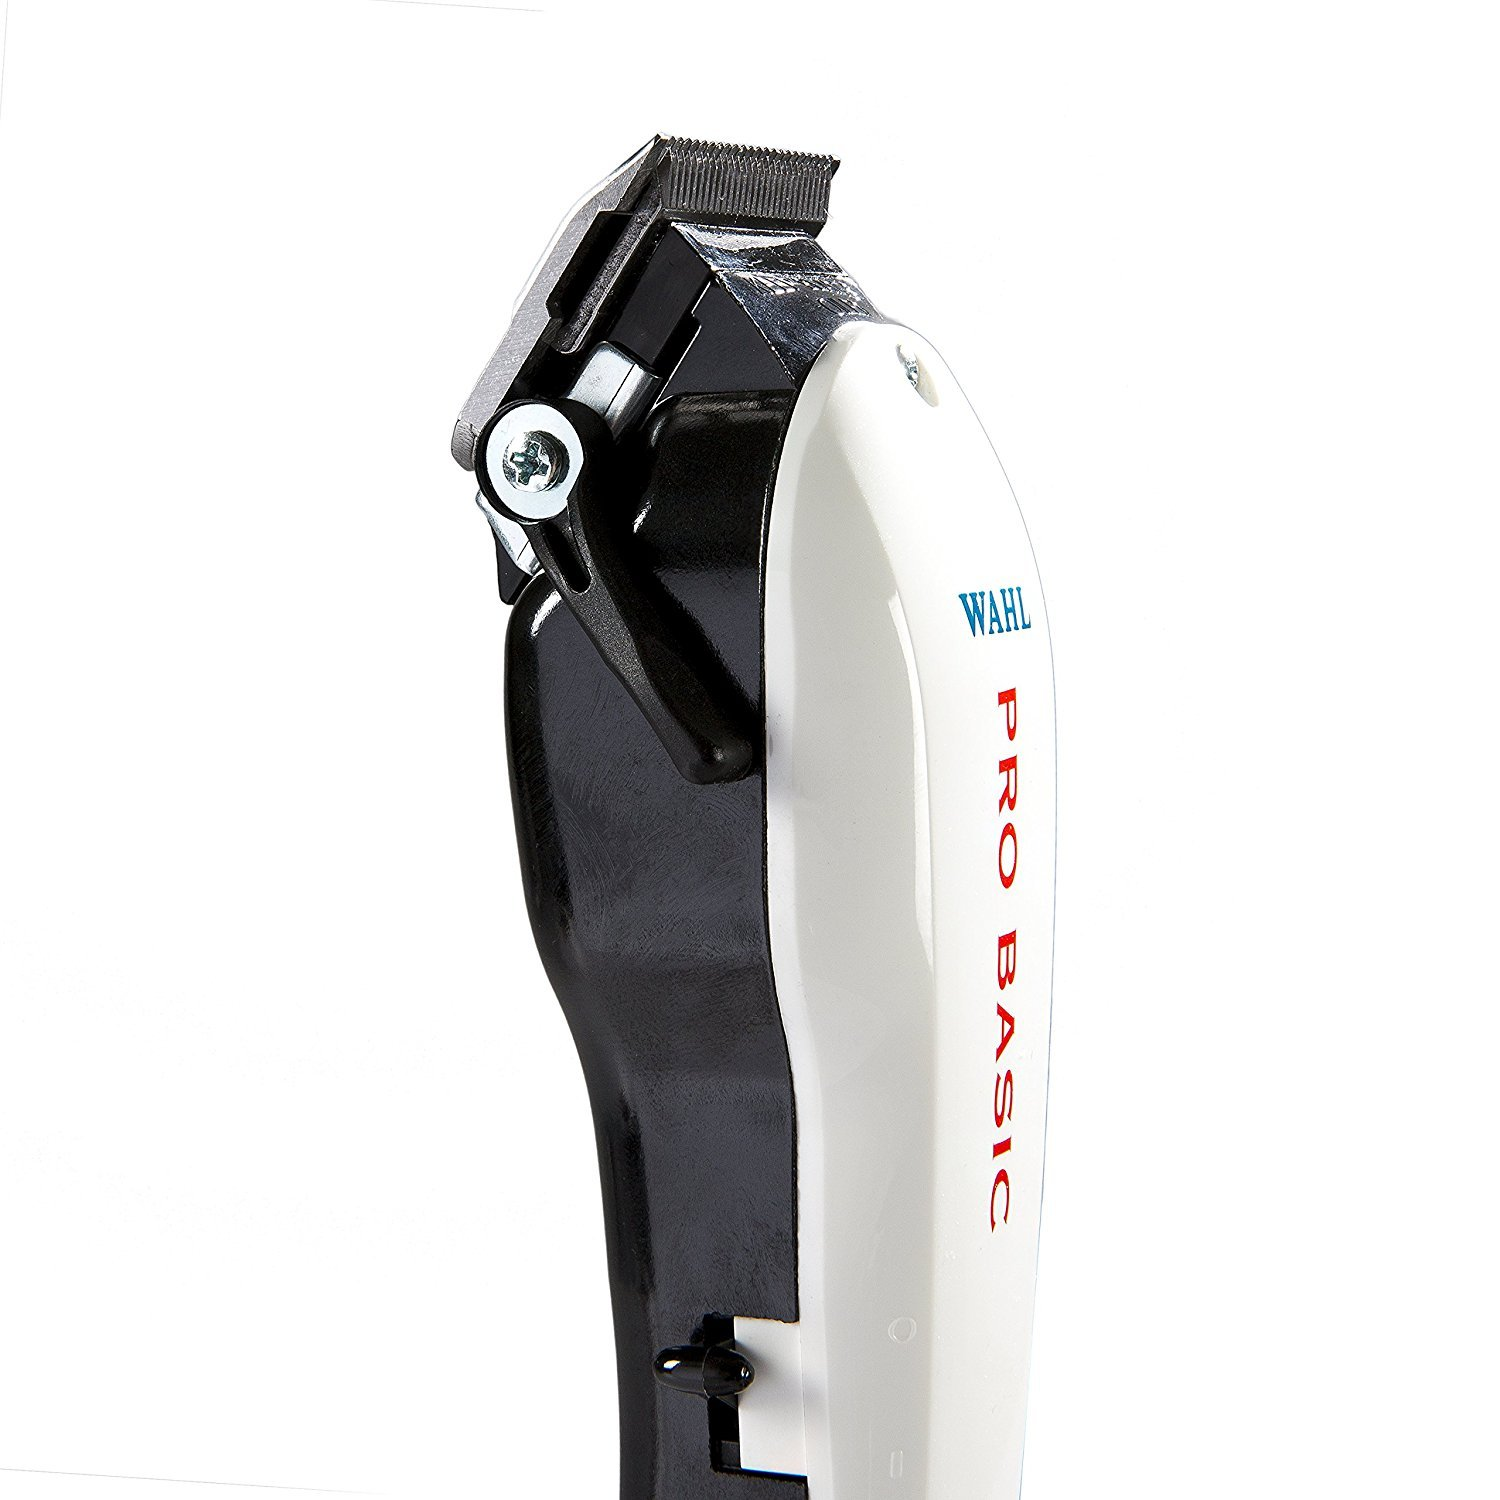 Wahl Professional Pro Basic Clipper #8255 with Travel Storage Case #90728 Great for Barbers and Stylists